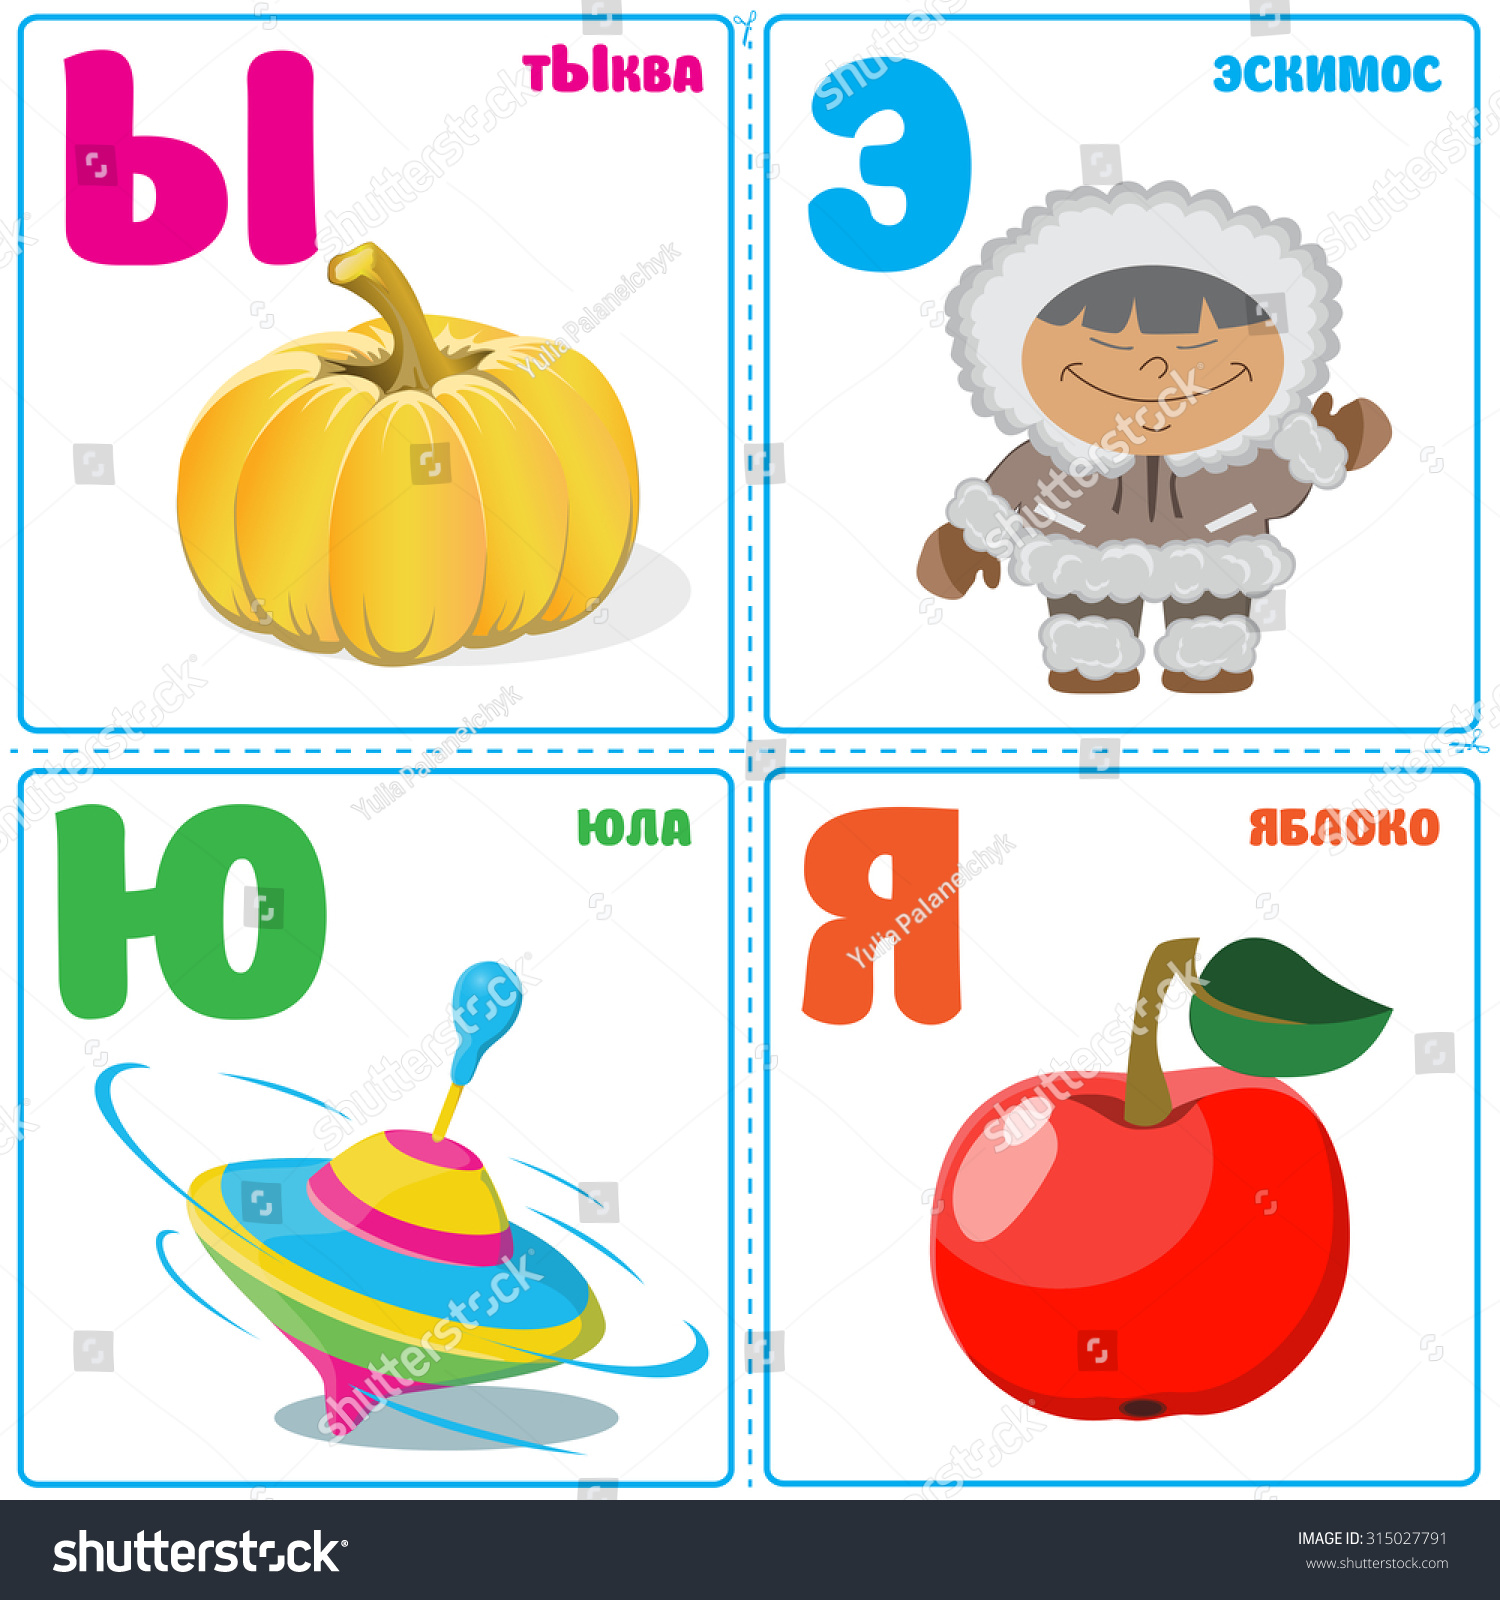 Part Russian Alphabet And 19